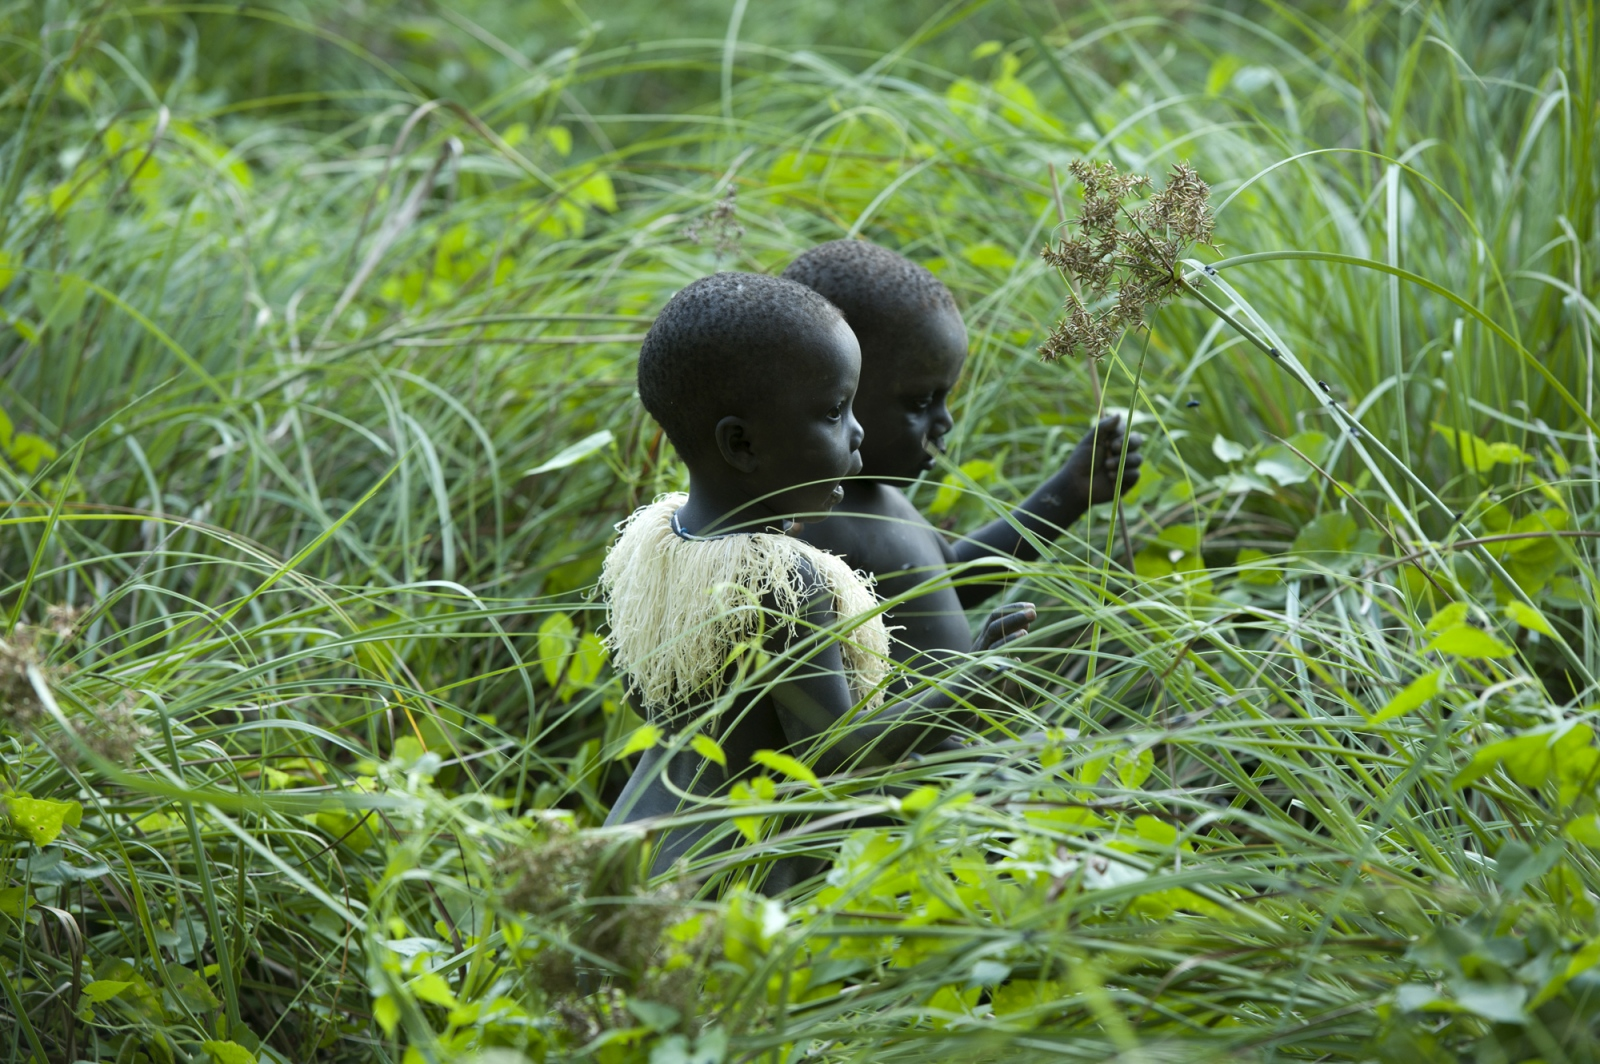 Art and Documentary Photography - Loading jarawa_beilvert_children_palying_in_the_tall_grass.jpg